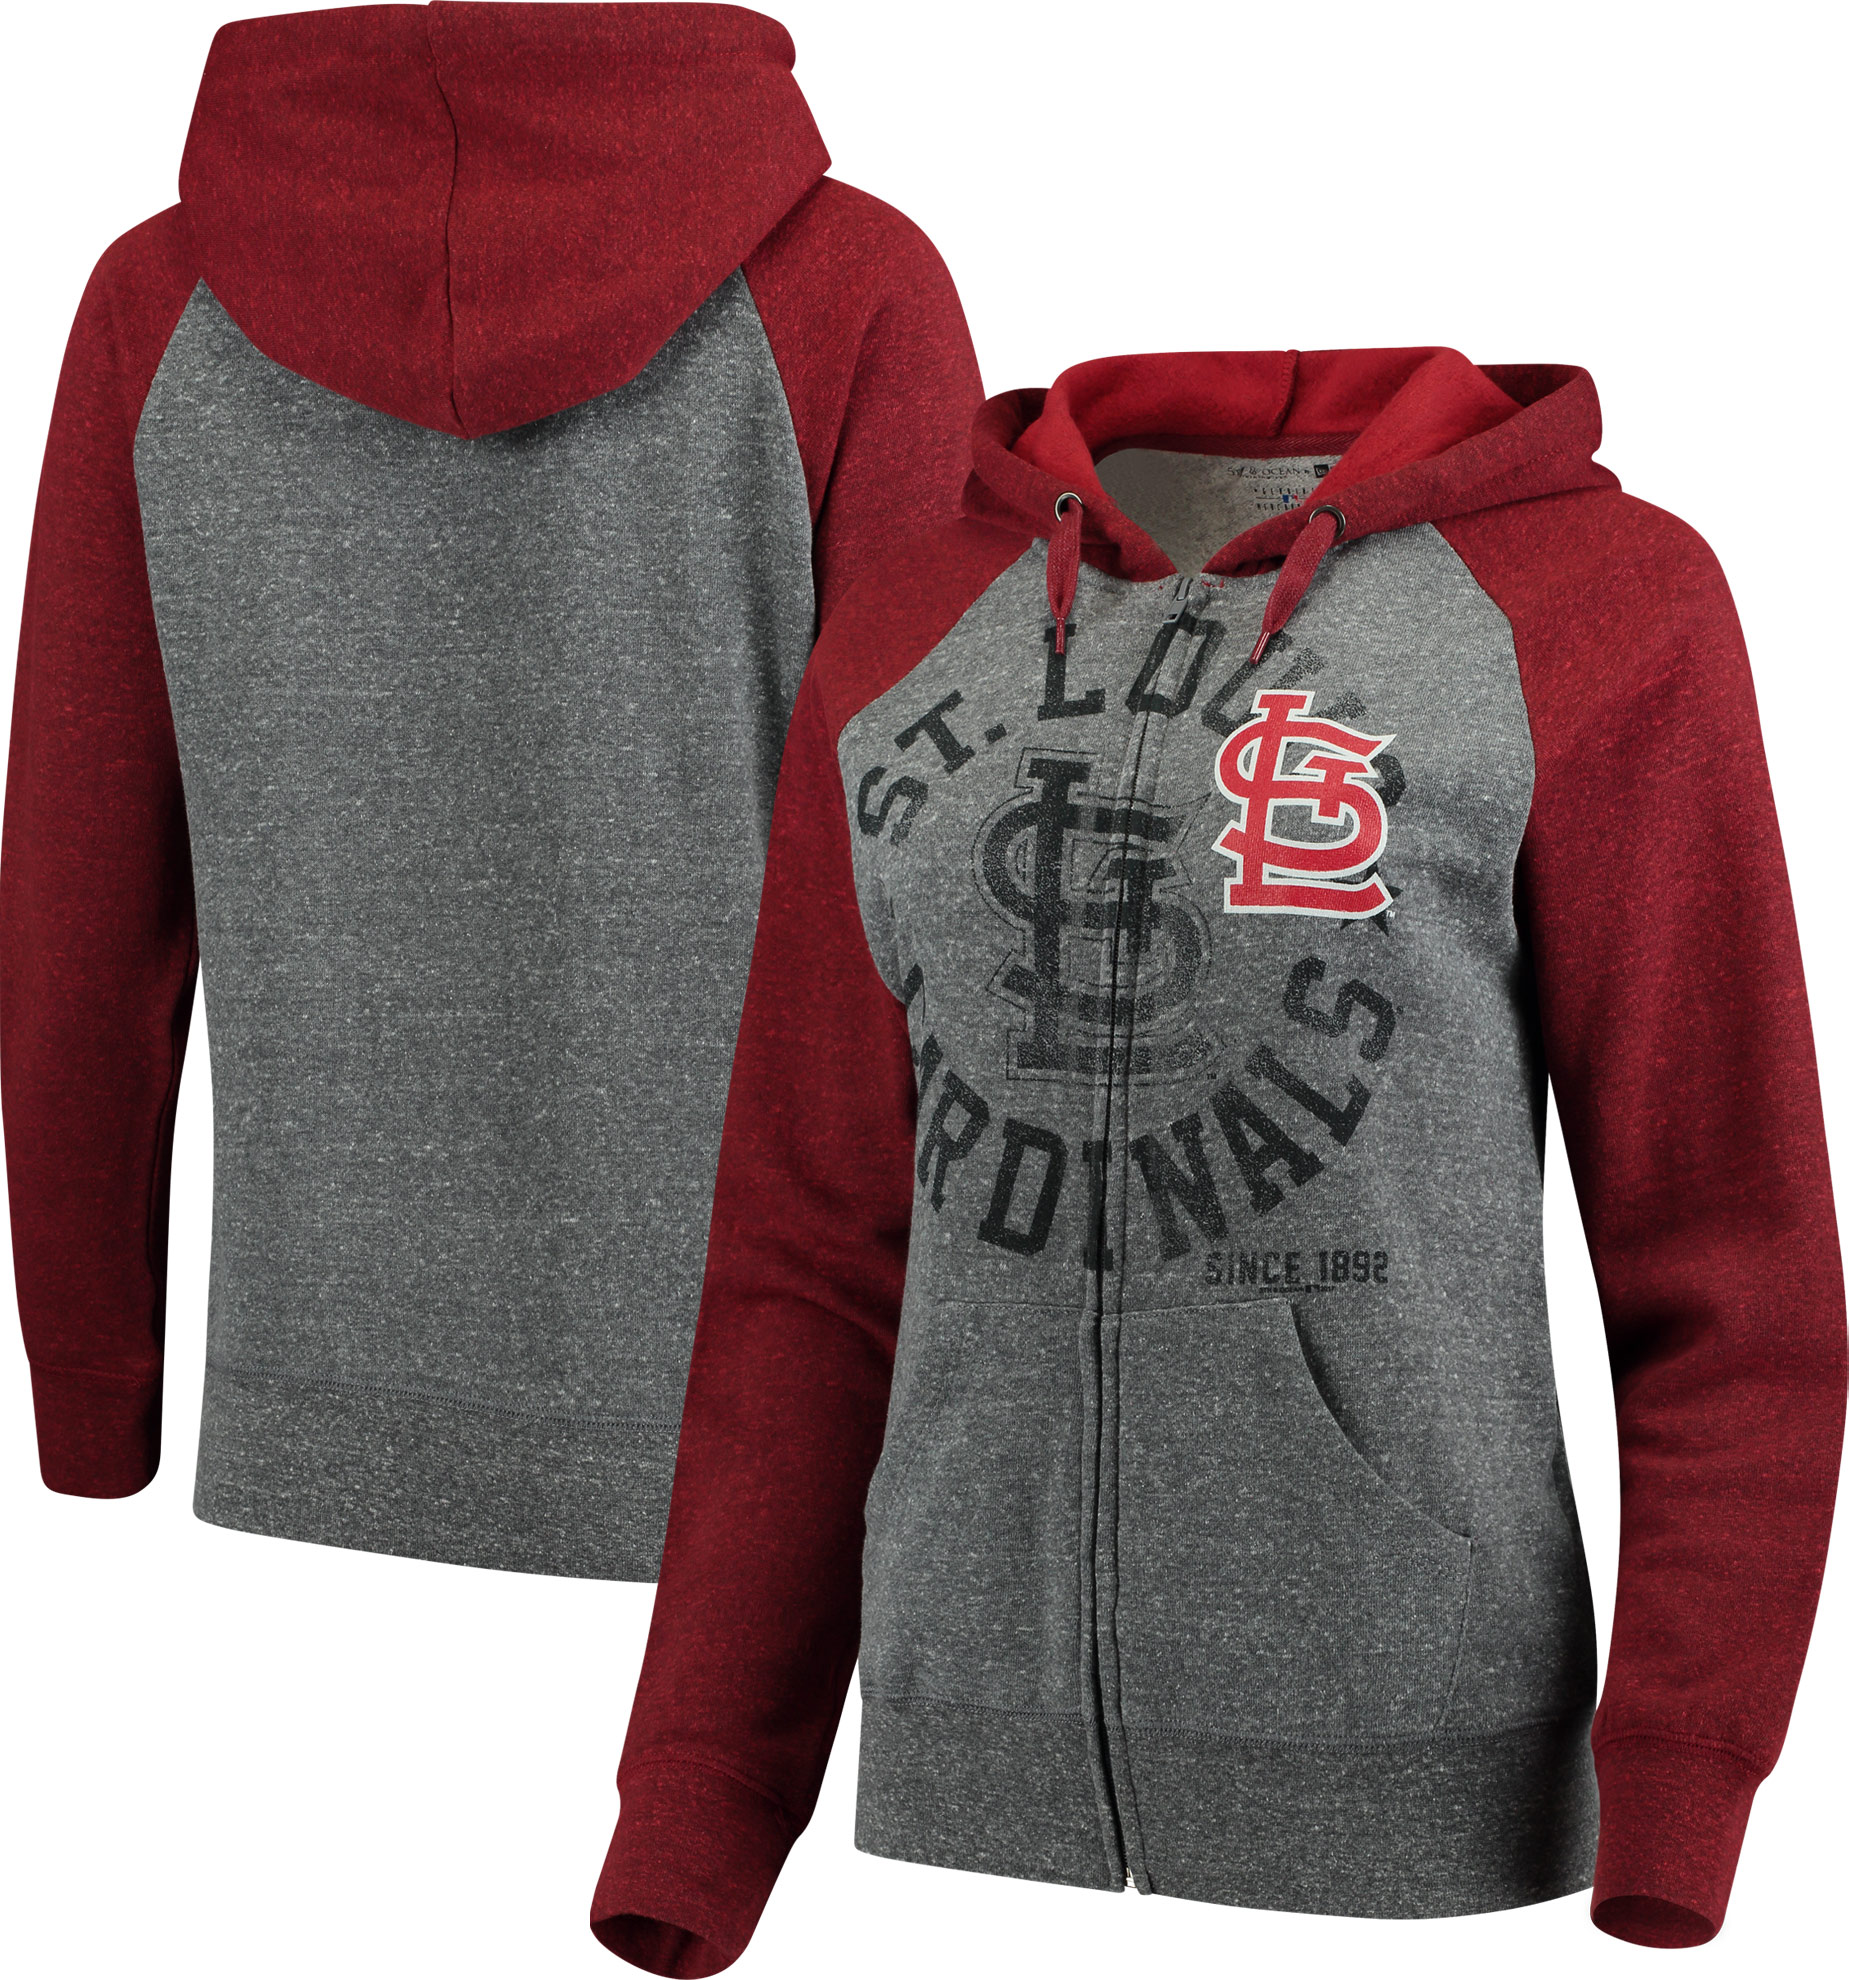 St. Louis Cardinals 5th & Ocean by New Era Women's Tri-Blend Raglan Fleece Full-Zip Hoodie - Heathered Gray/Red